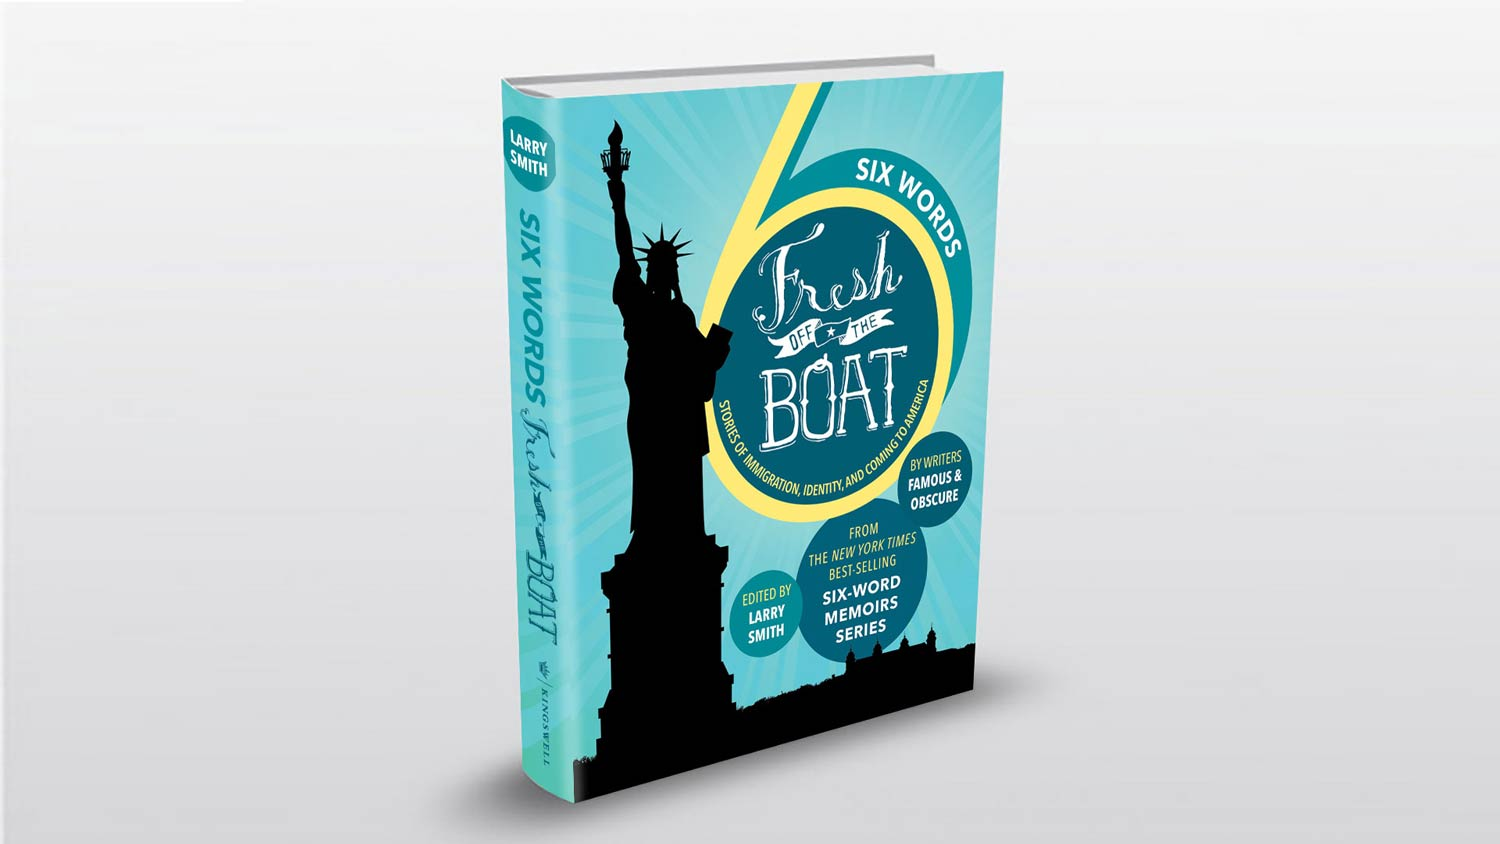 Six words fresh off the boat six word memoirs this timely and unique crowd sourced book of immigration stories each told in six words captures hundreds of memoirs on the experience from across publicscrutiny Choice Image